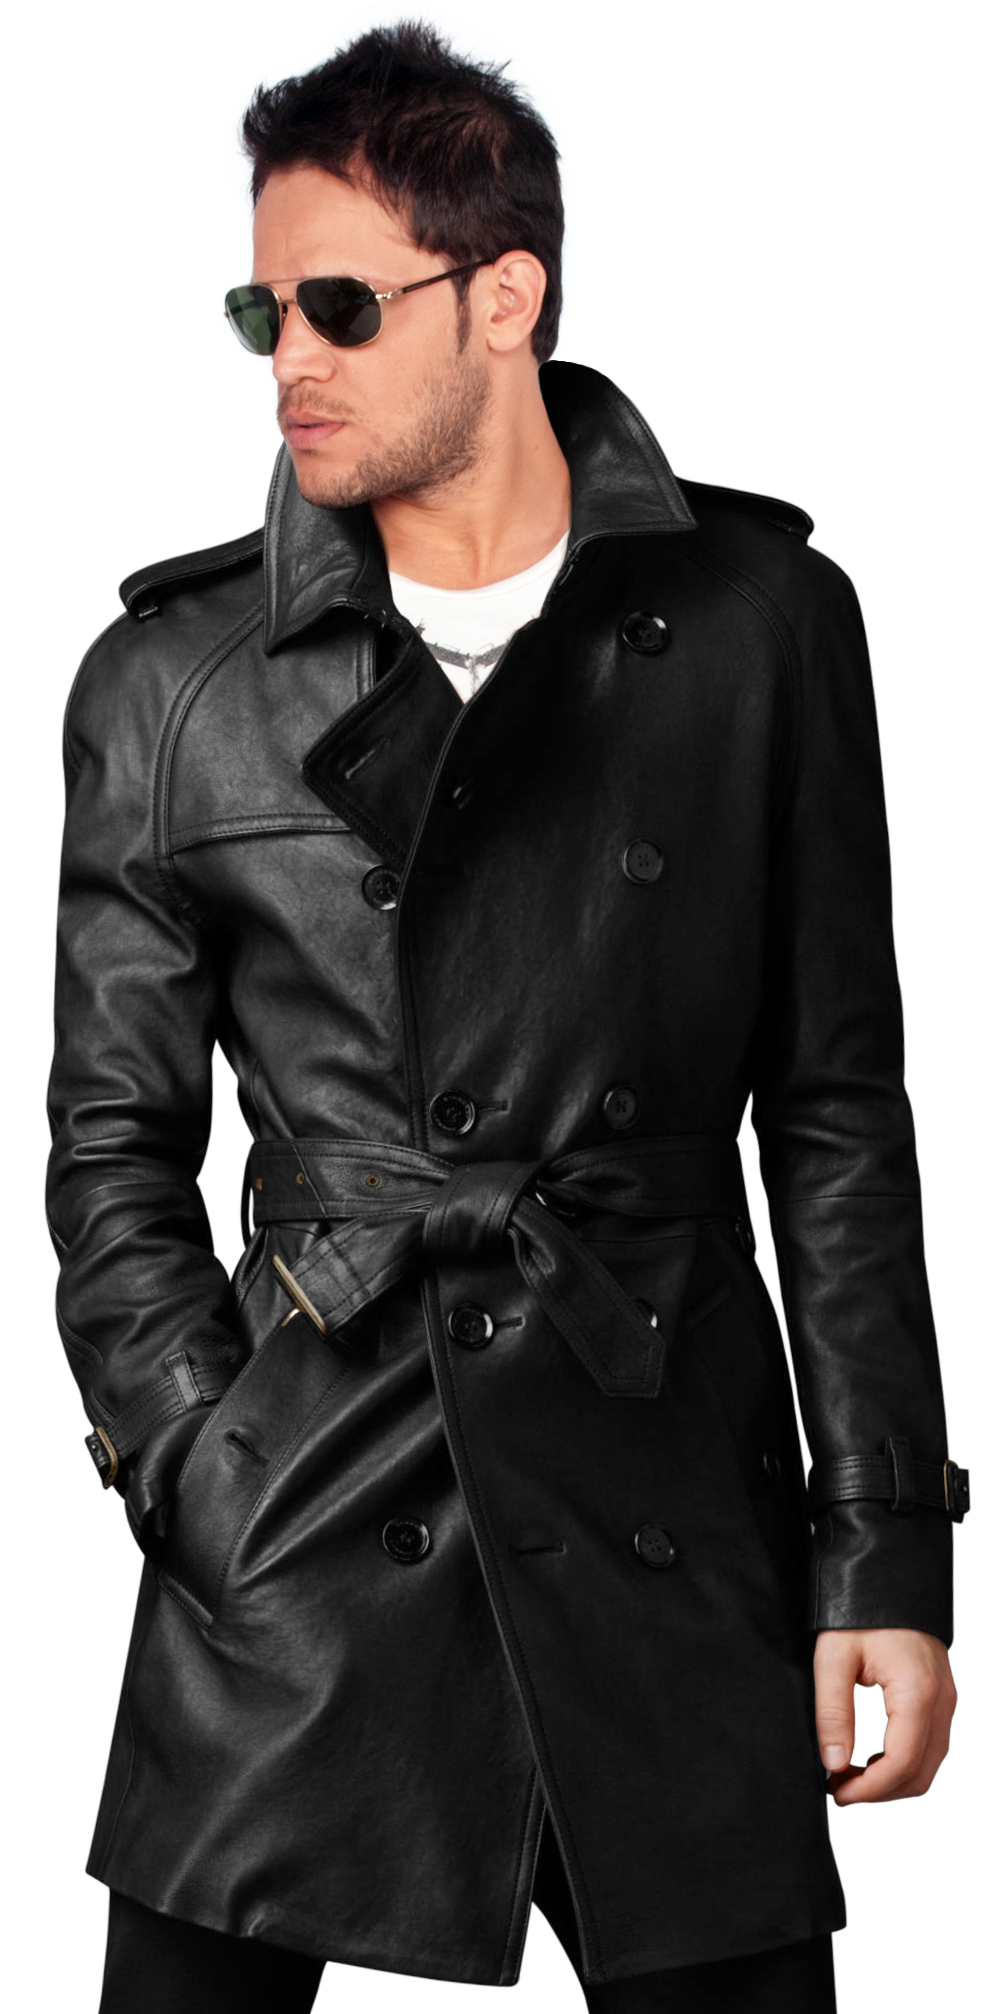 Designer mens leather coats online | leatherfads